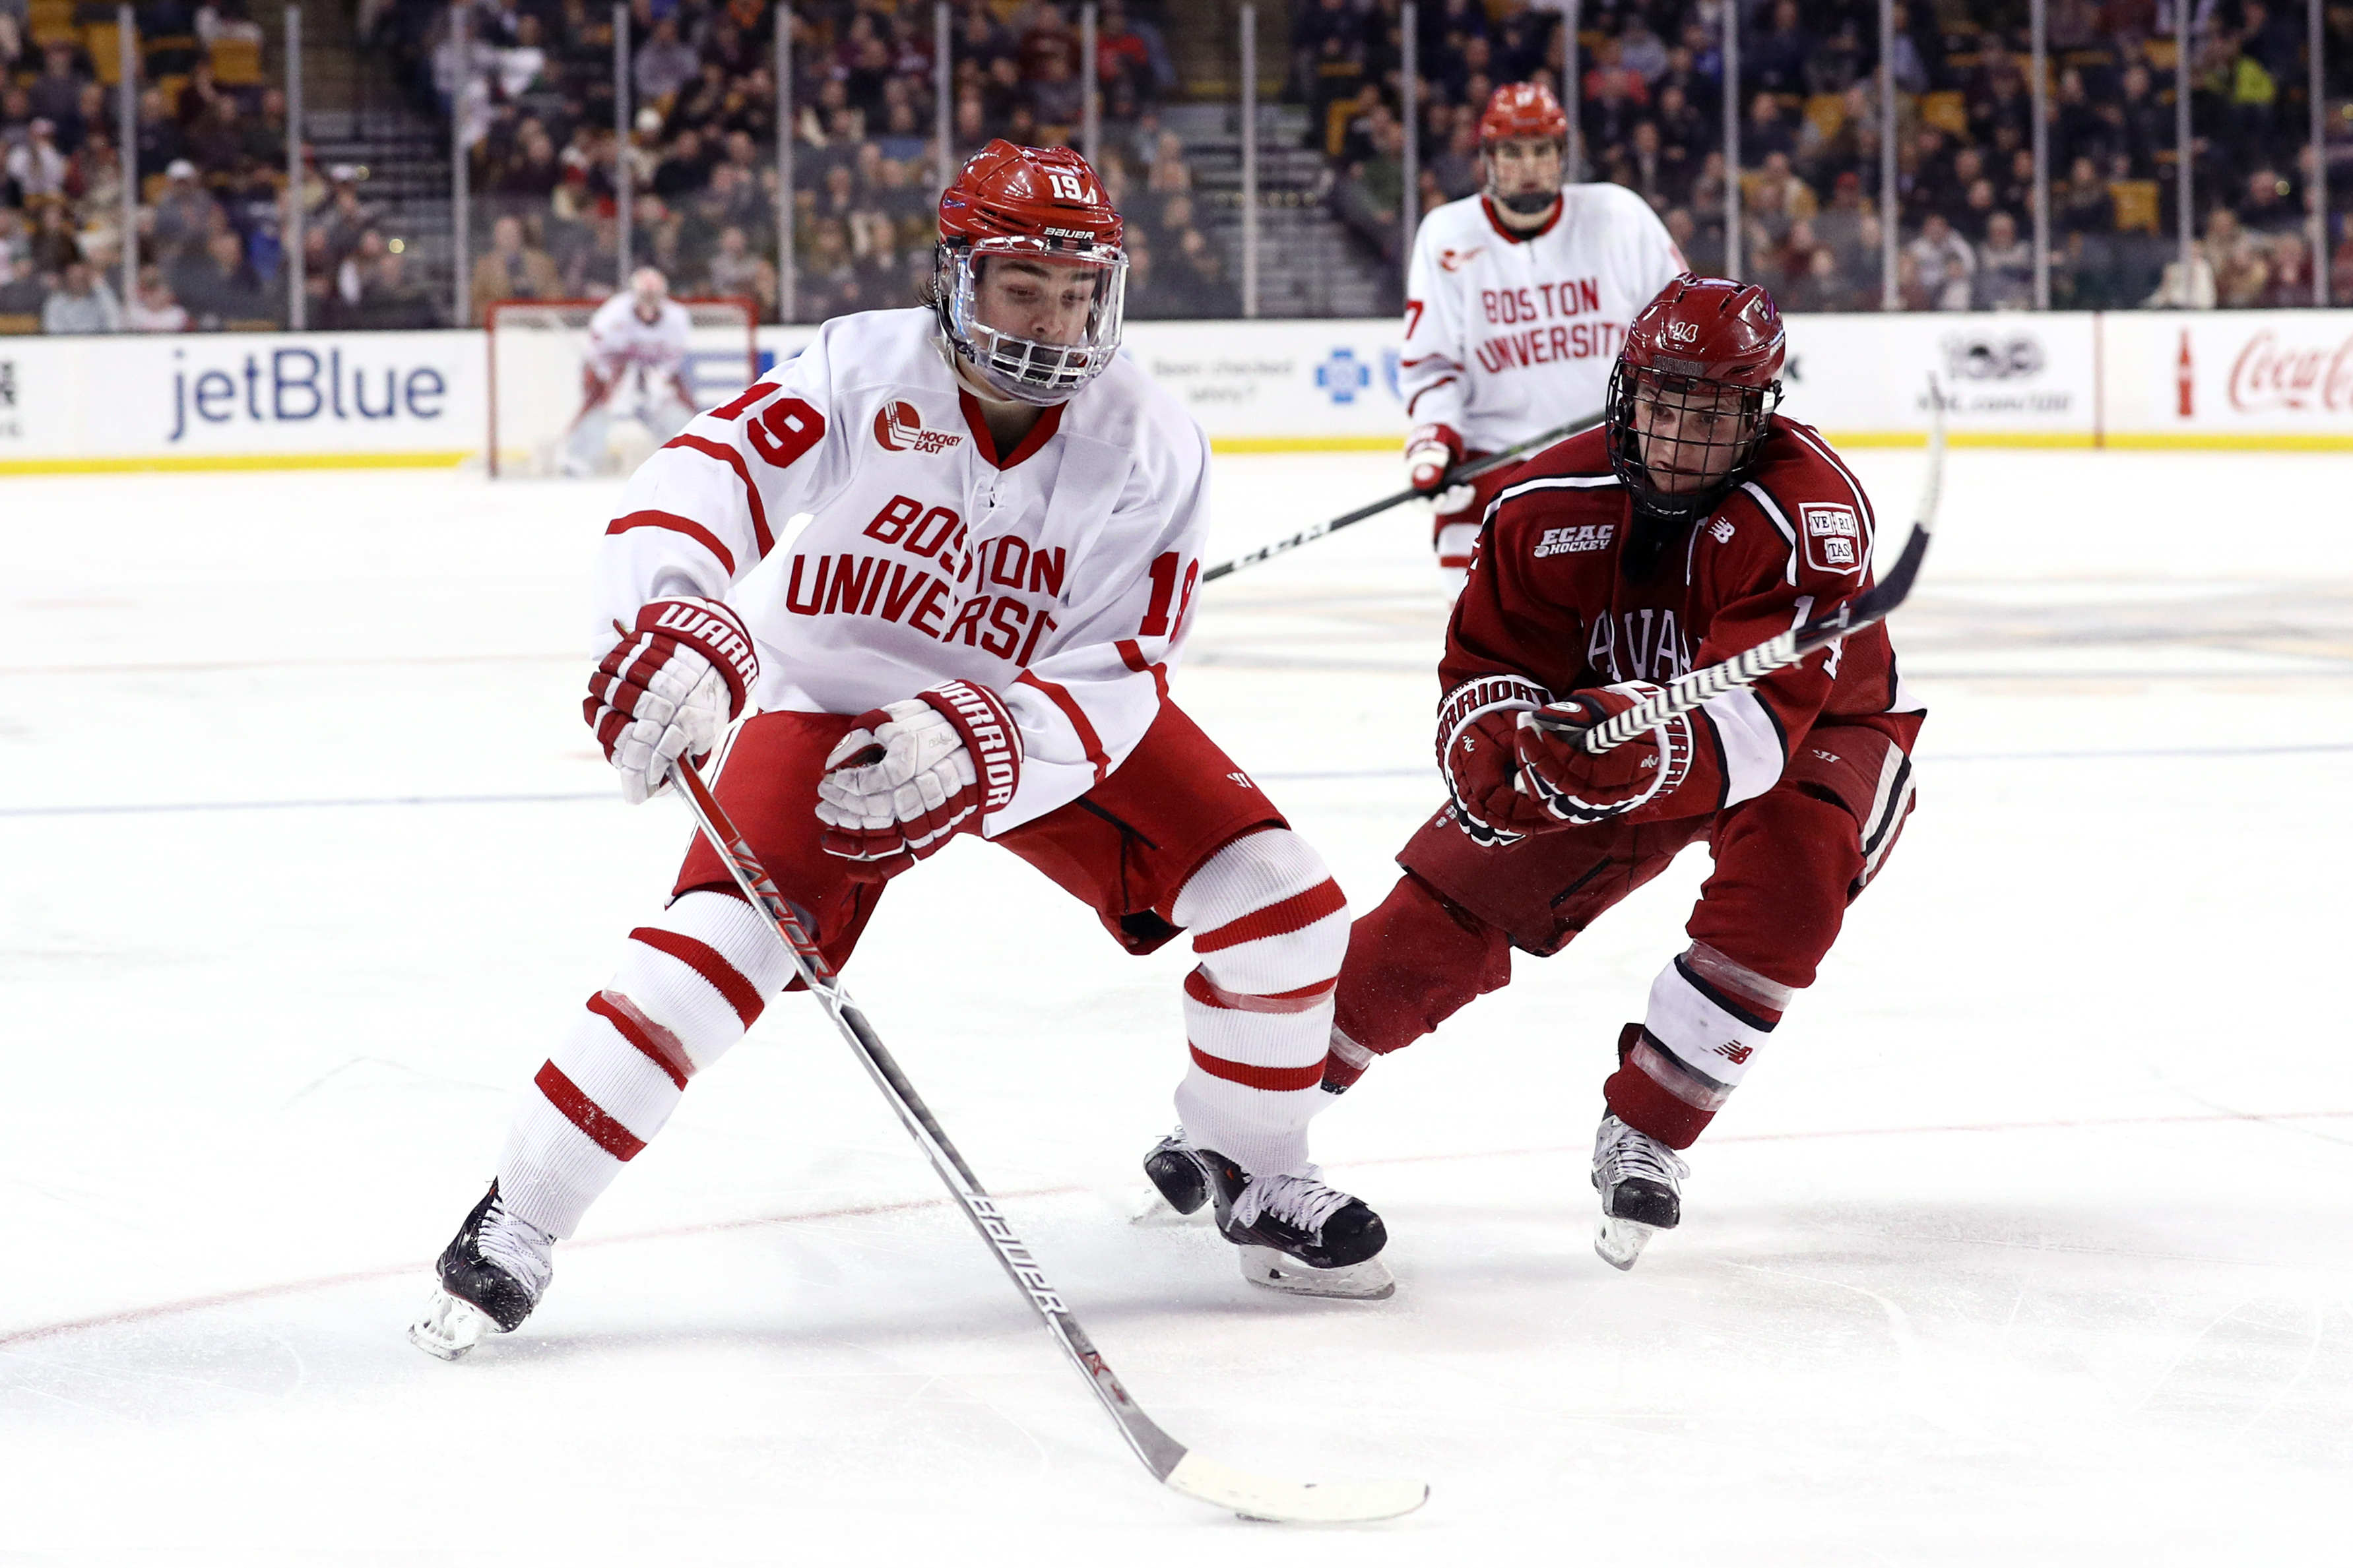 NCAA: Top 100 NHL Prospects - 1-5